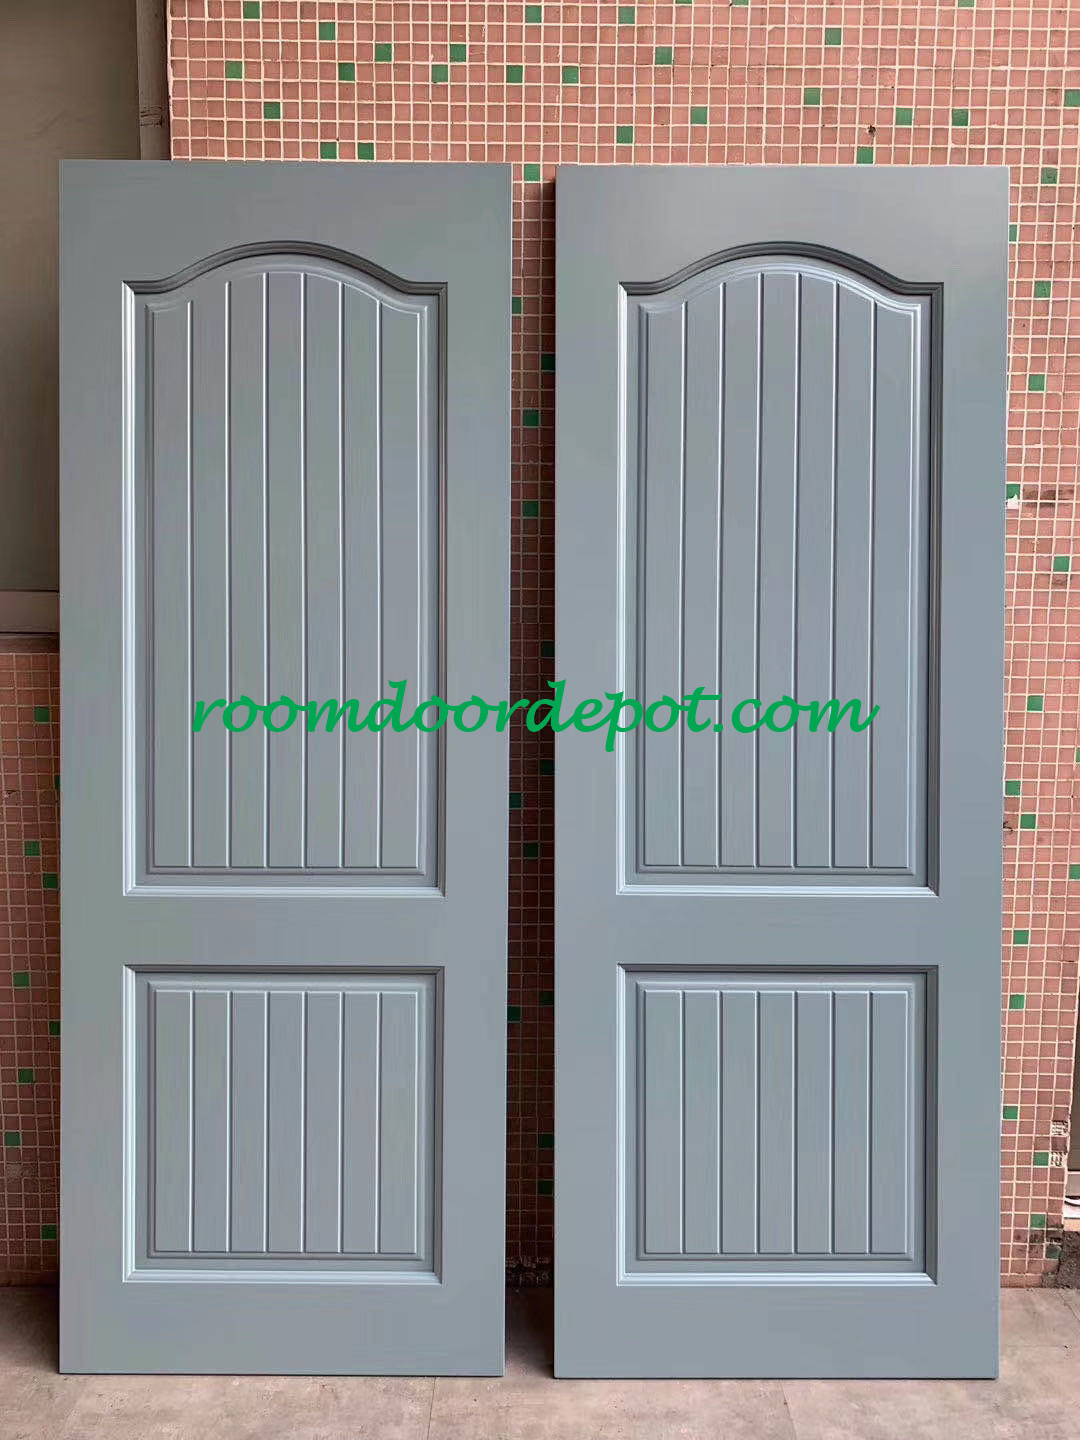 lacquer finished solid wood interior doors in pre-hung packing